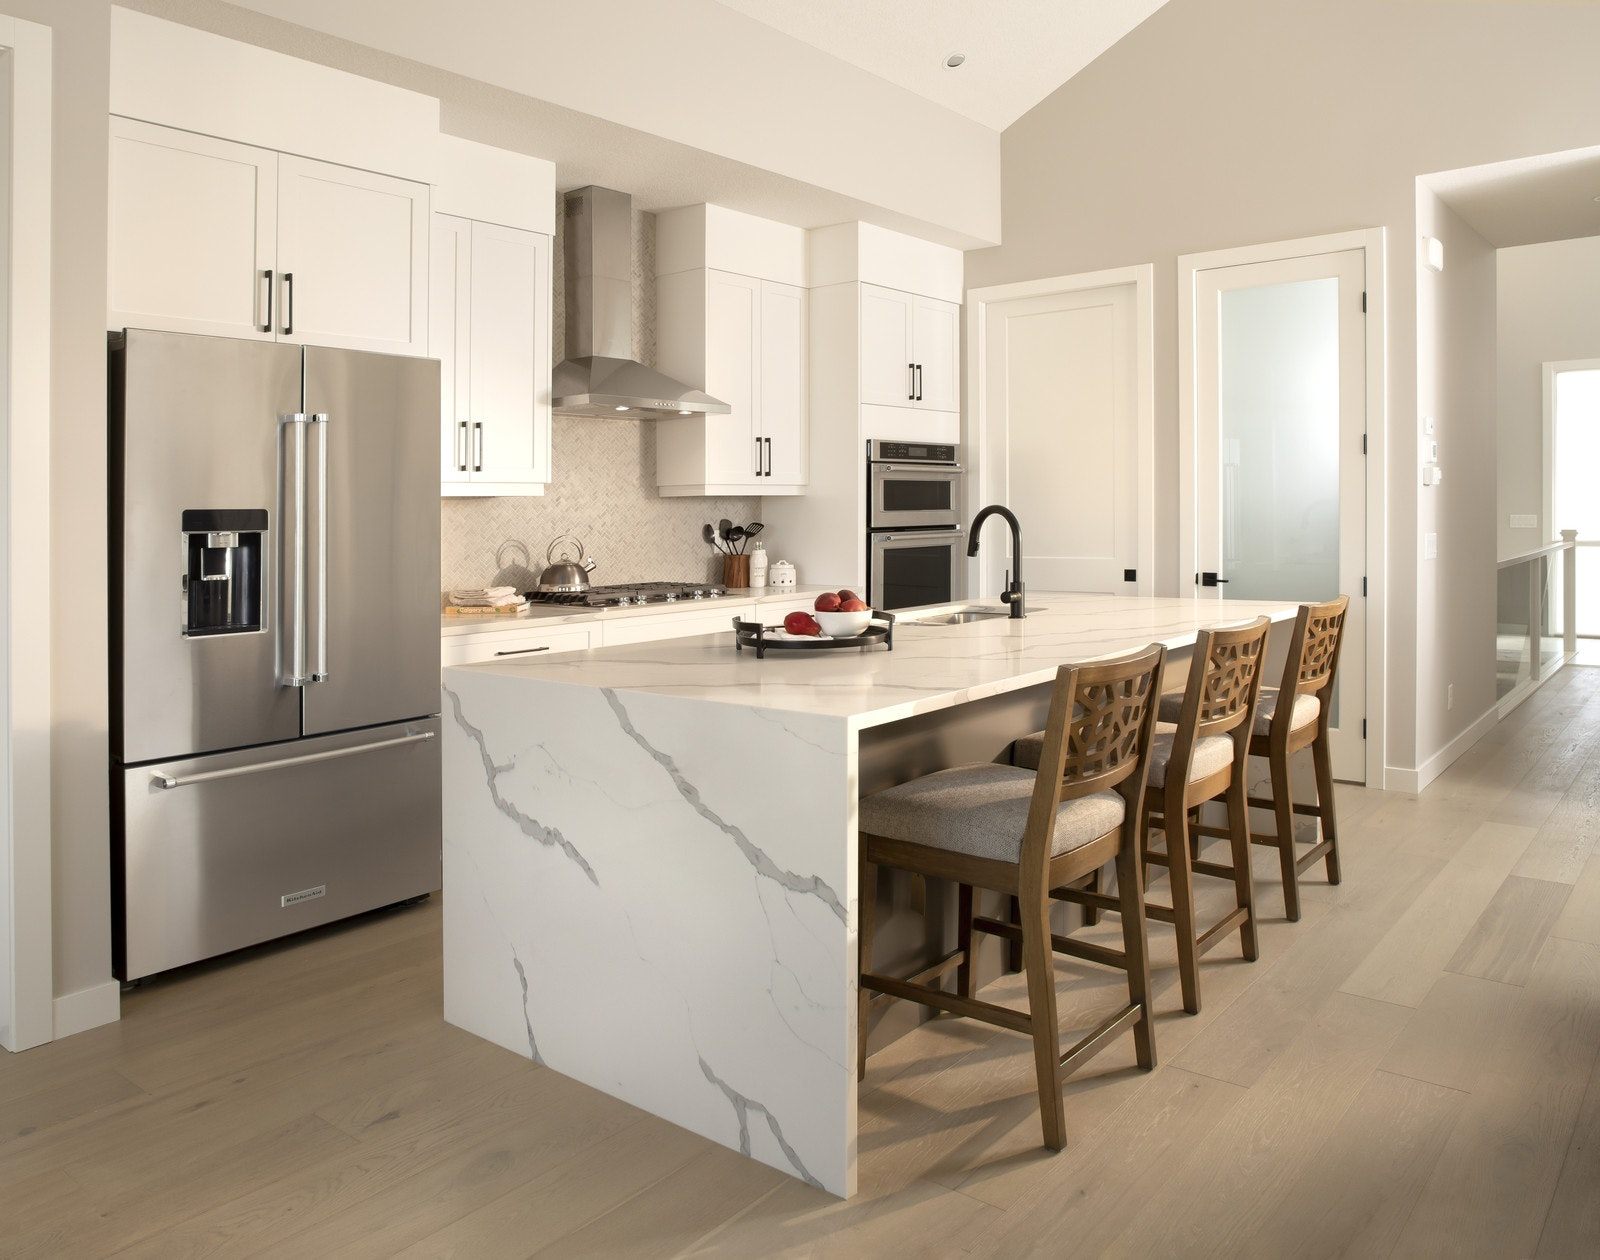 White kitchen with fruit on the counter